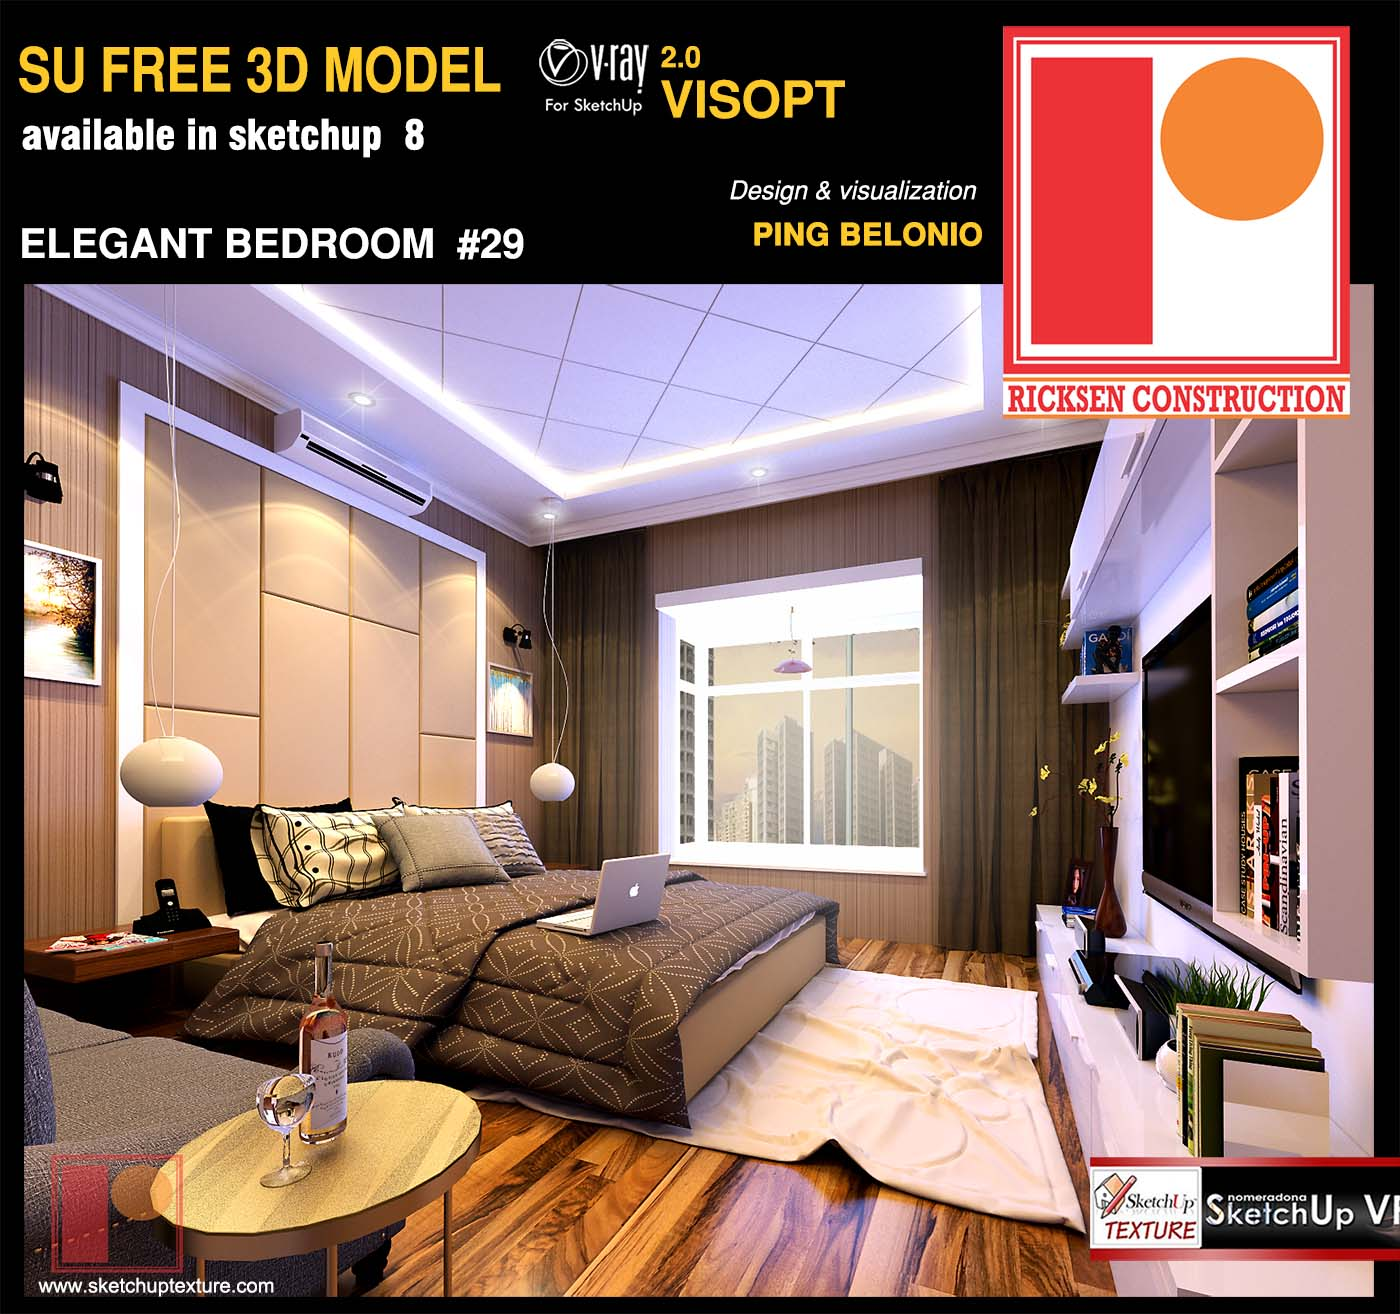 SKETCHUP TEXTURE: SKETCHUP MODEL BEDROOM